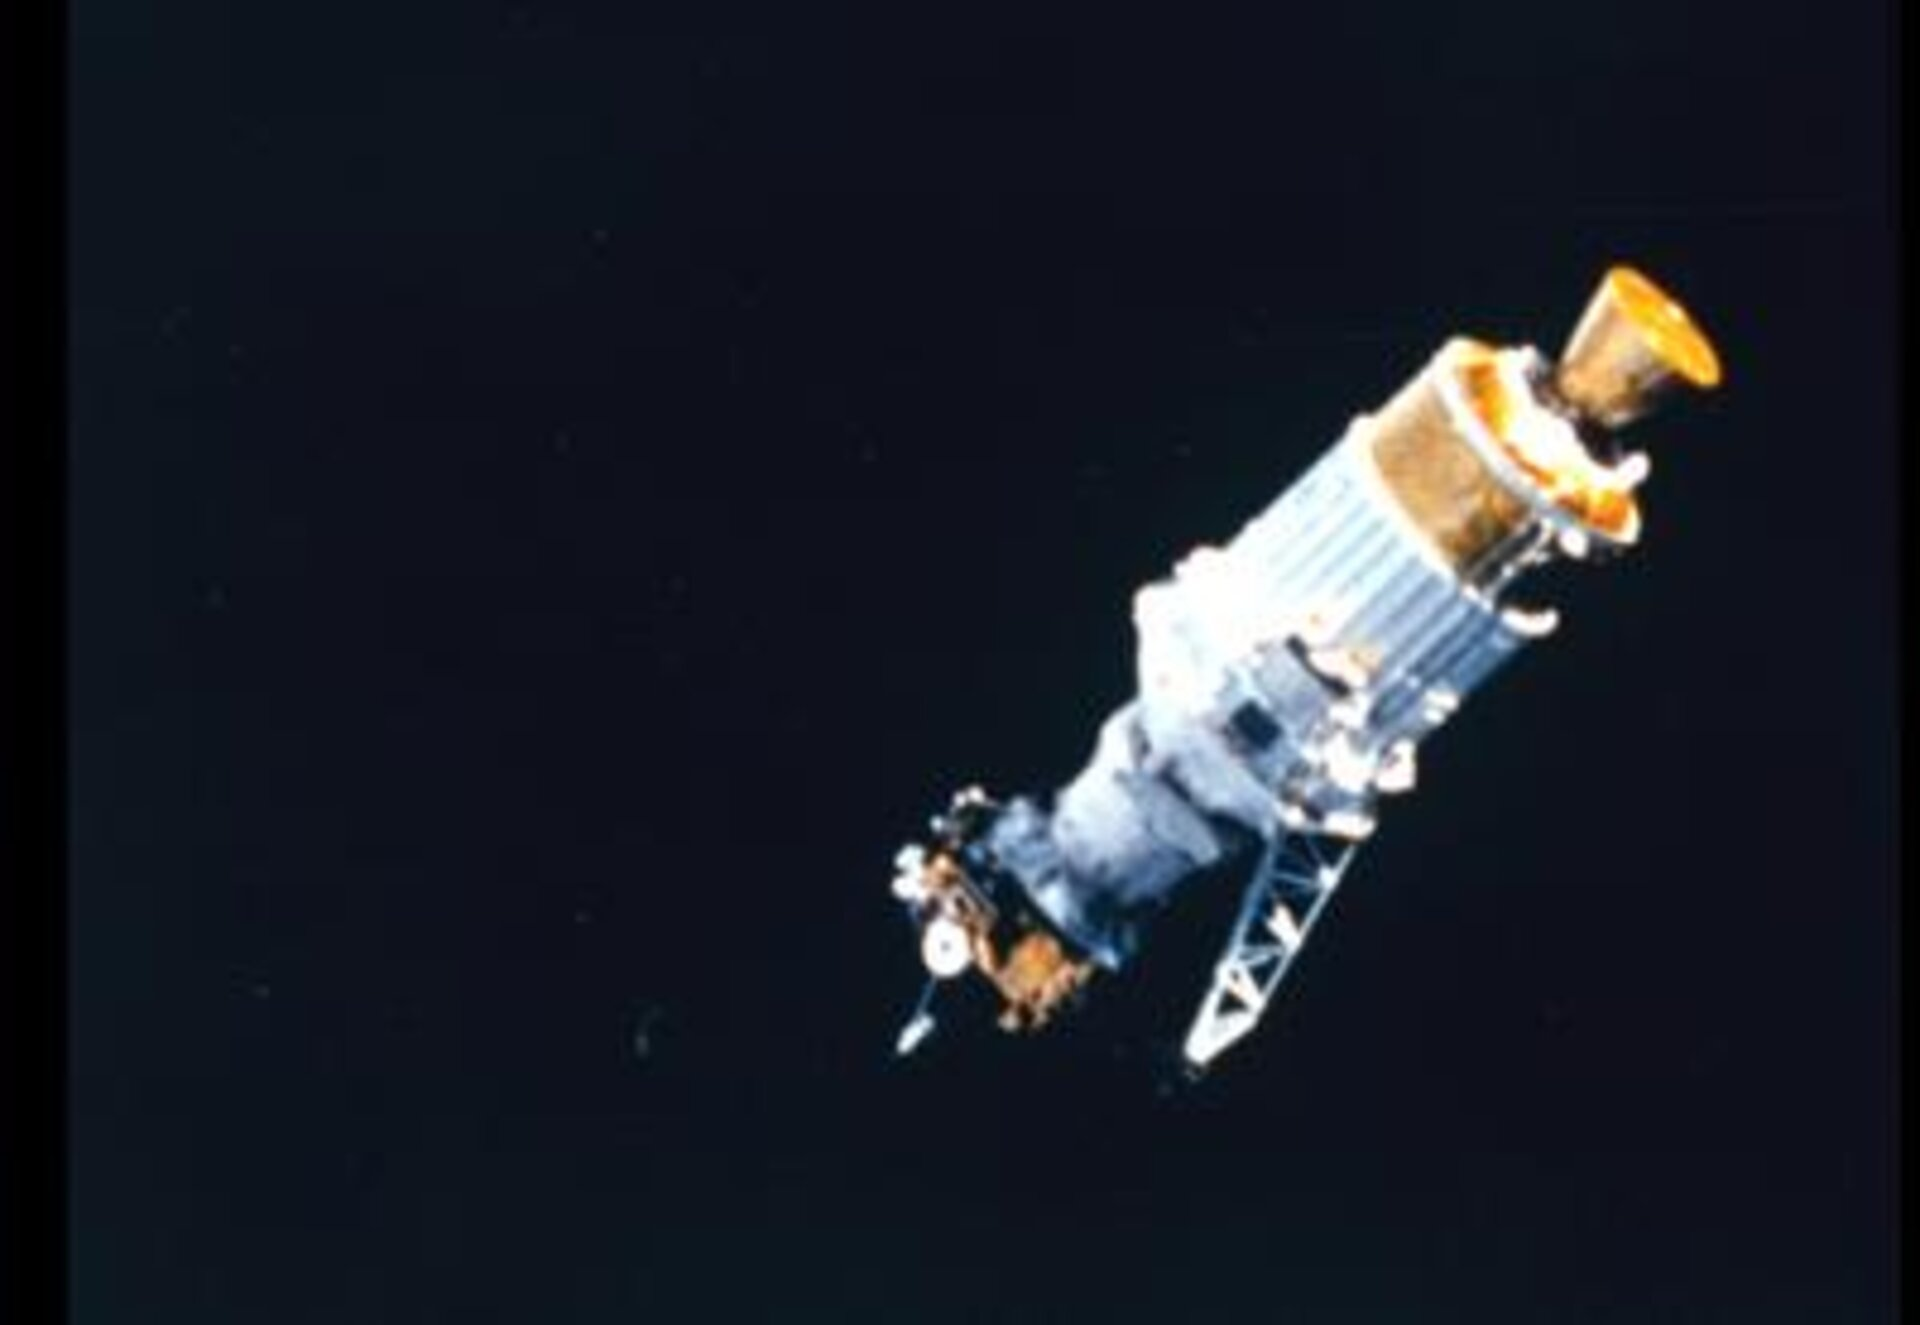 Ulysses release from Space Shuttle